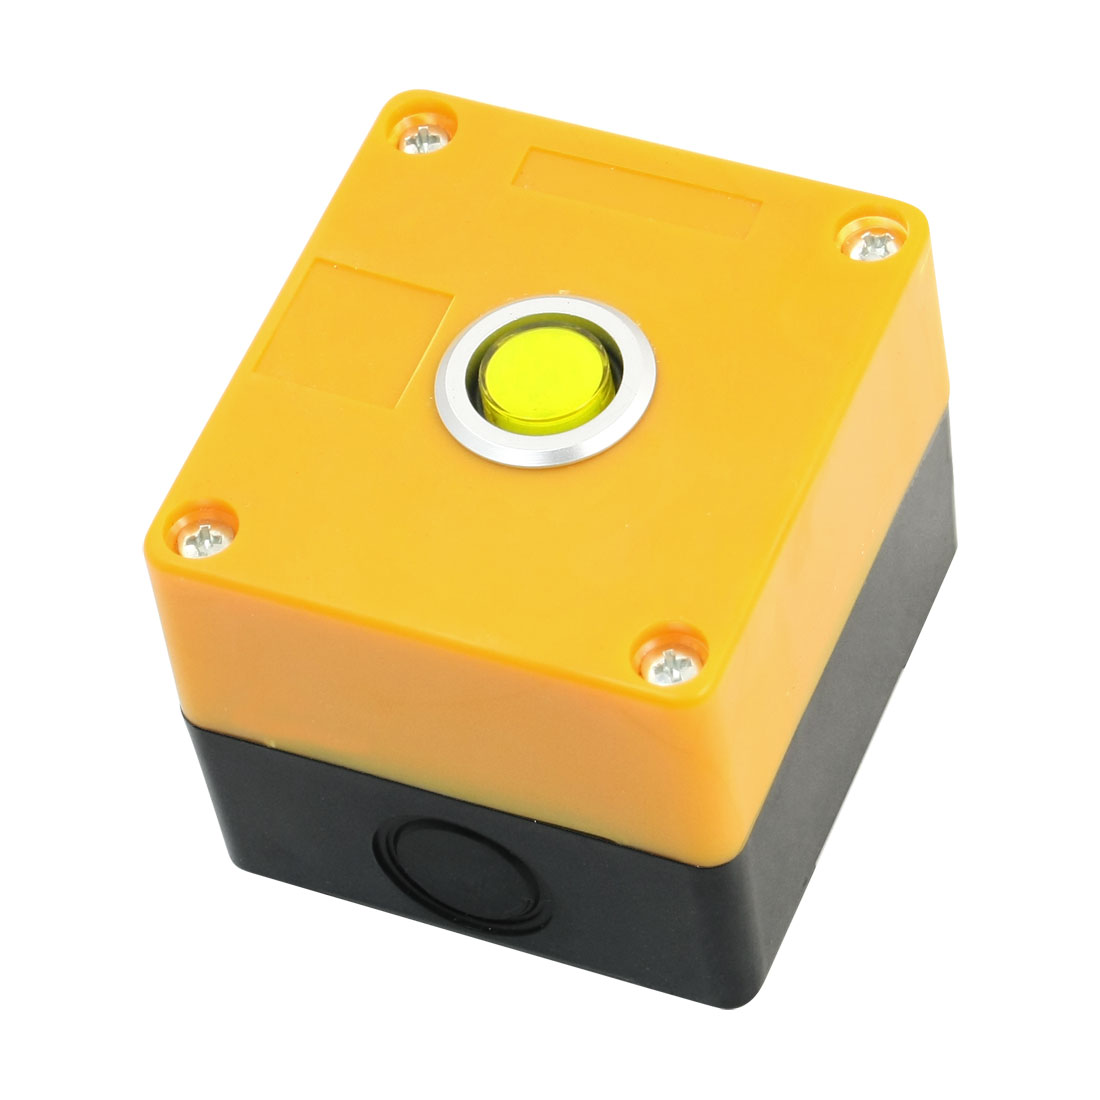 AC 220V 5A Yellow Pilot Lamp SPDT 5Pin 1NO 1NC Momentary Action Rectangle Plastic Push Button Station Switch Control Box